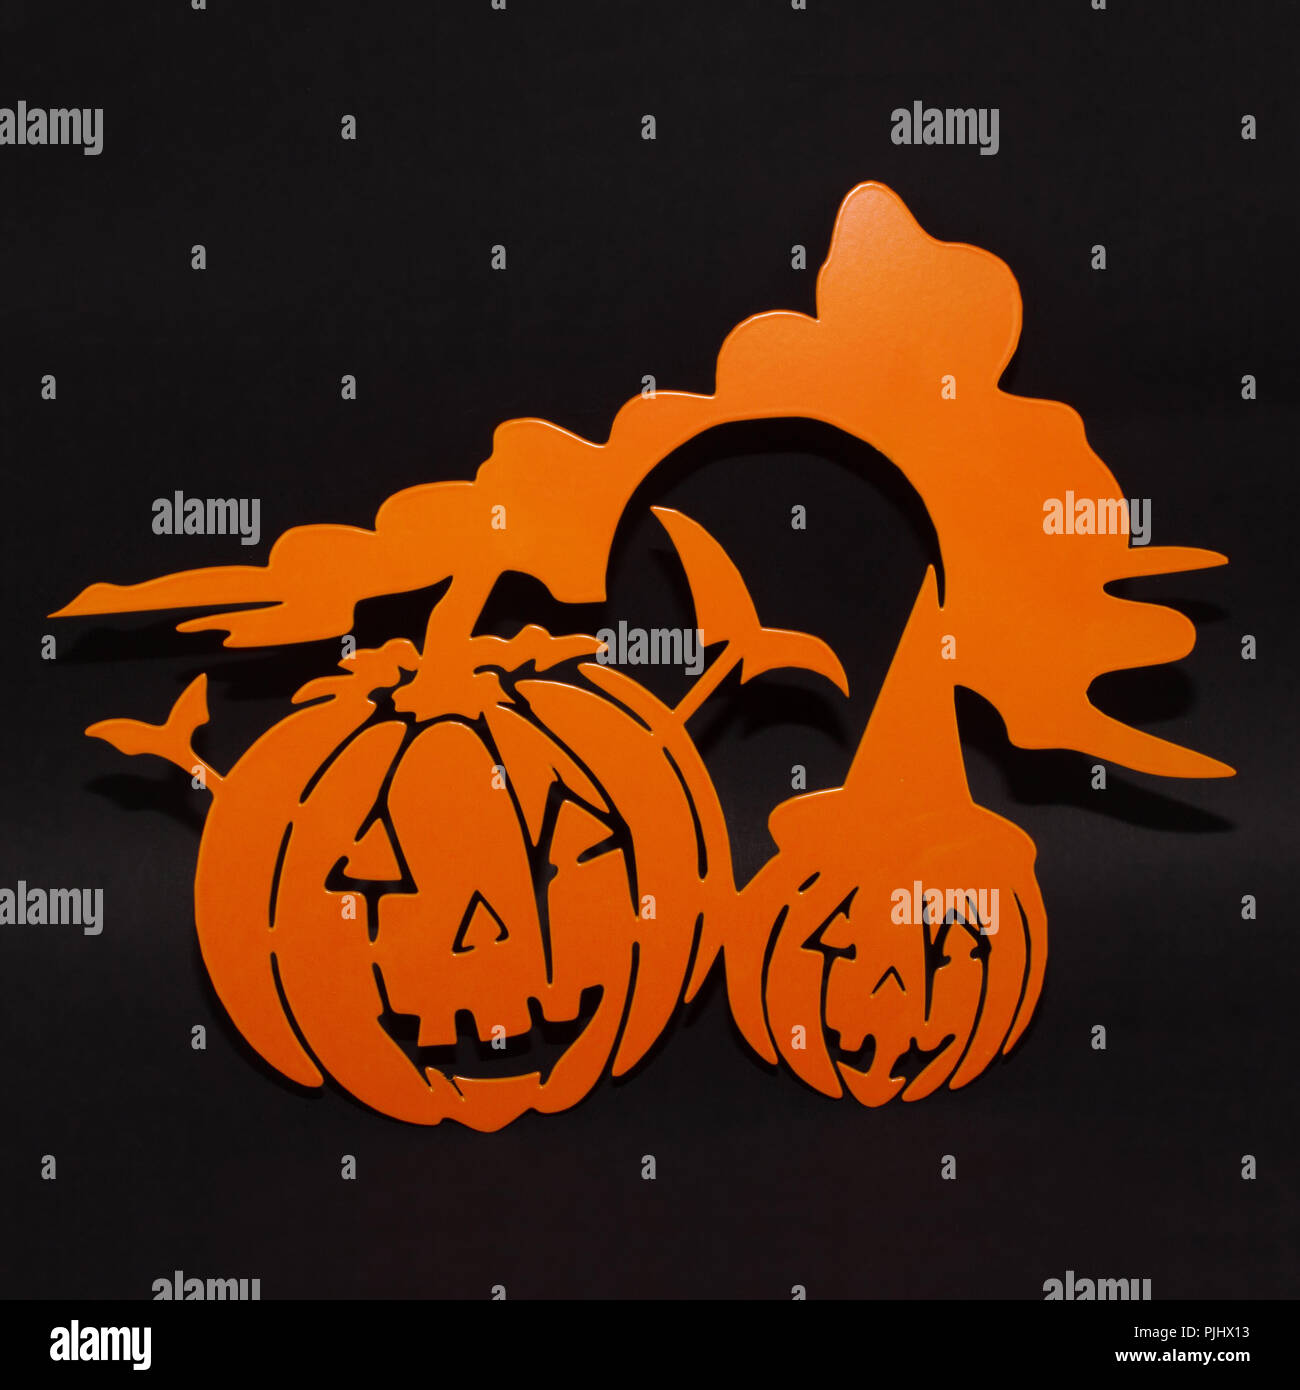 Halloween background decoration holiday concept. Two orange pumpkins angry faces shadow and silhouette on black background Stock Photo